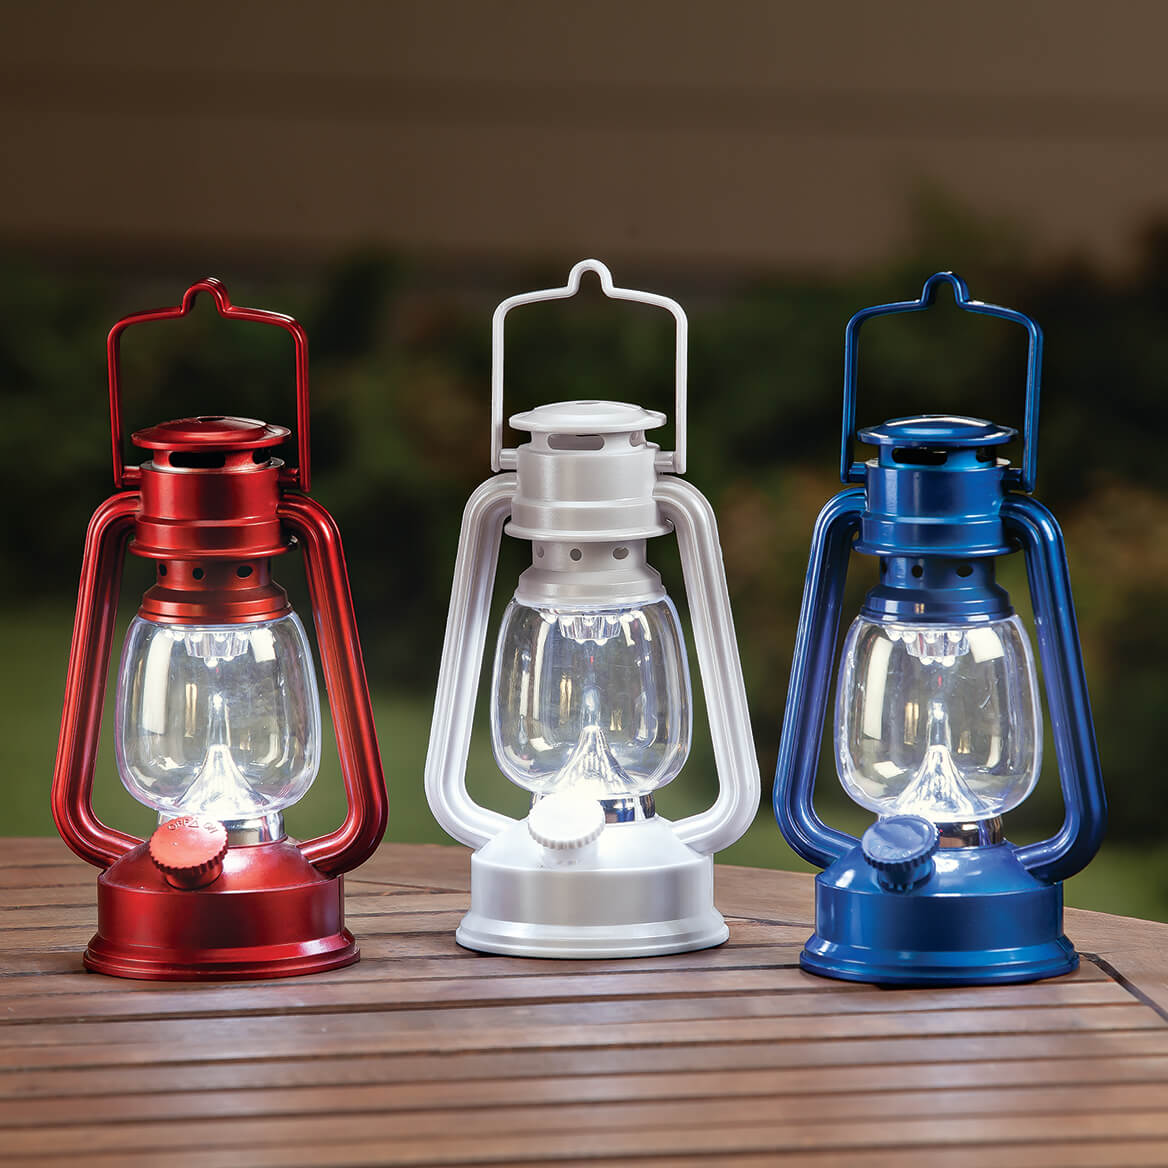 Red, White and Blue Lanterns Set of 3-369431